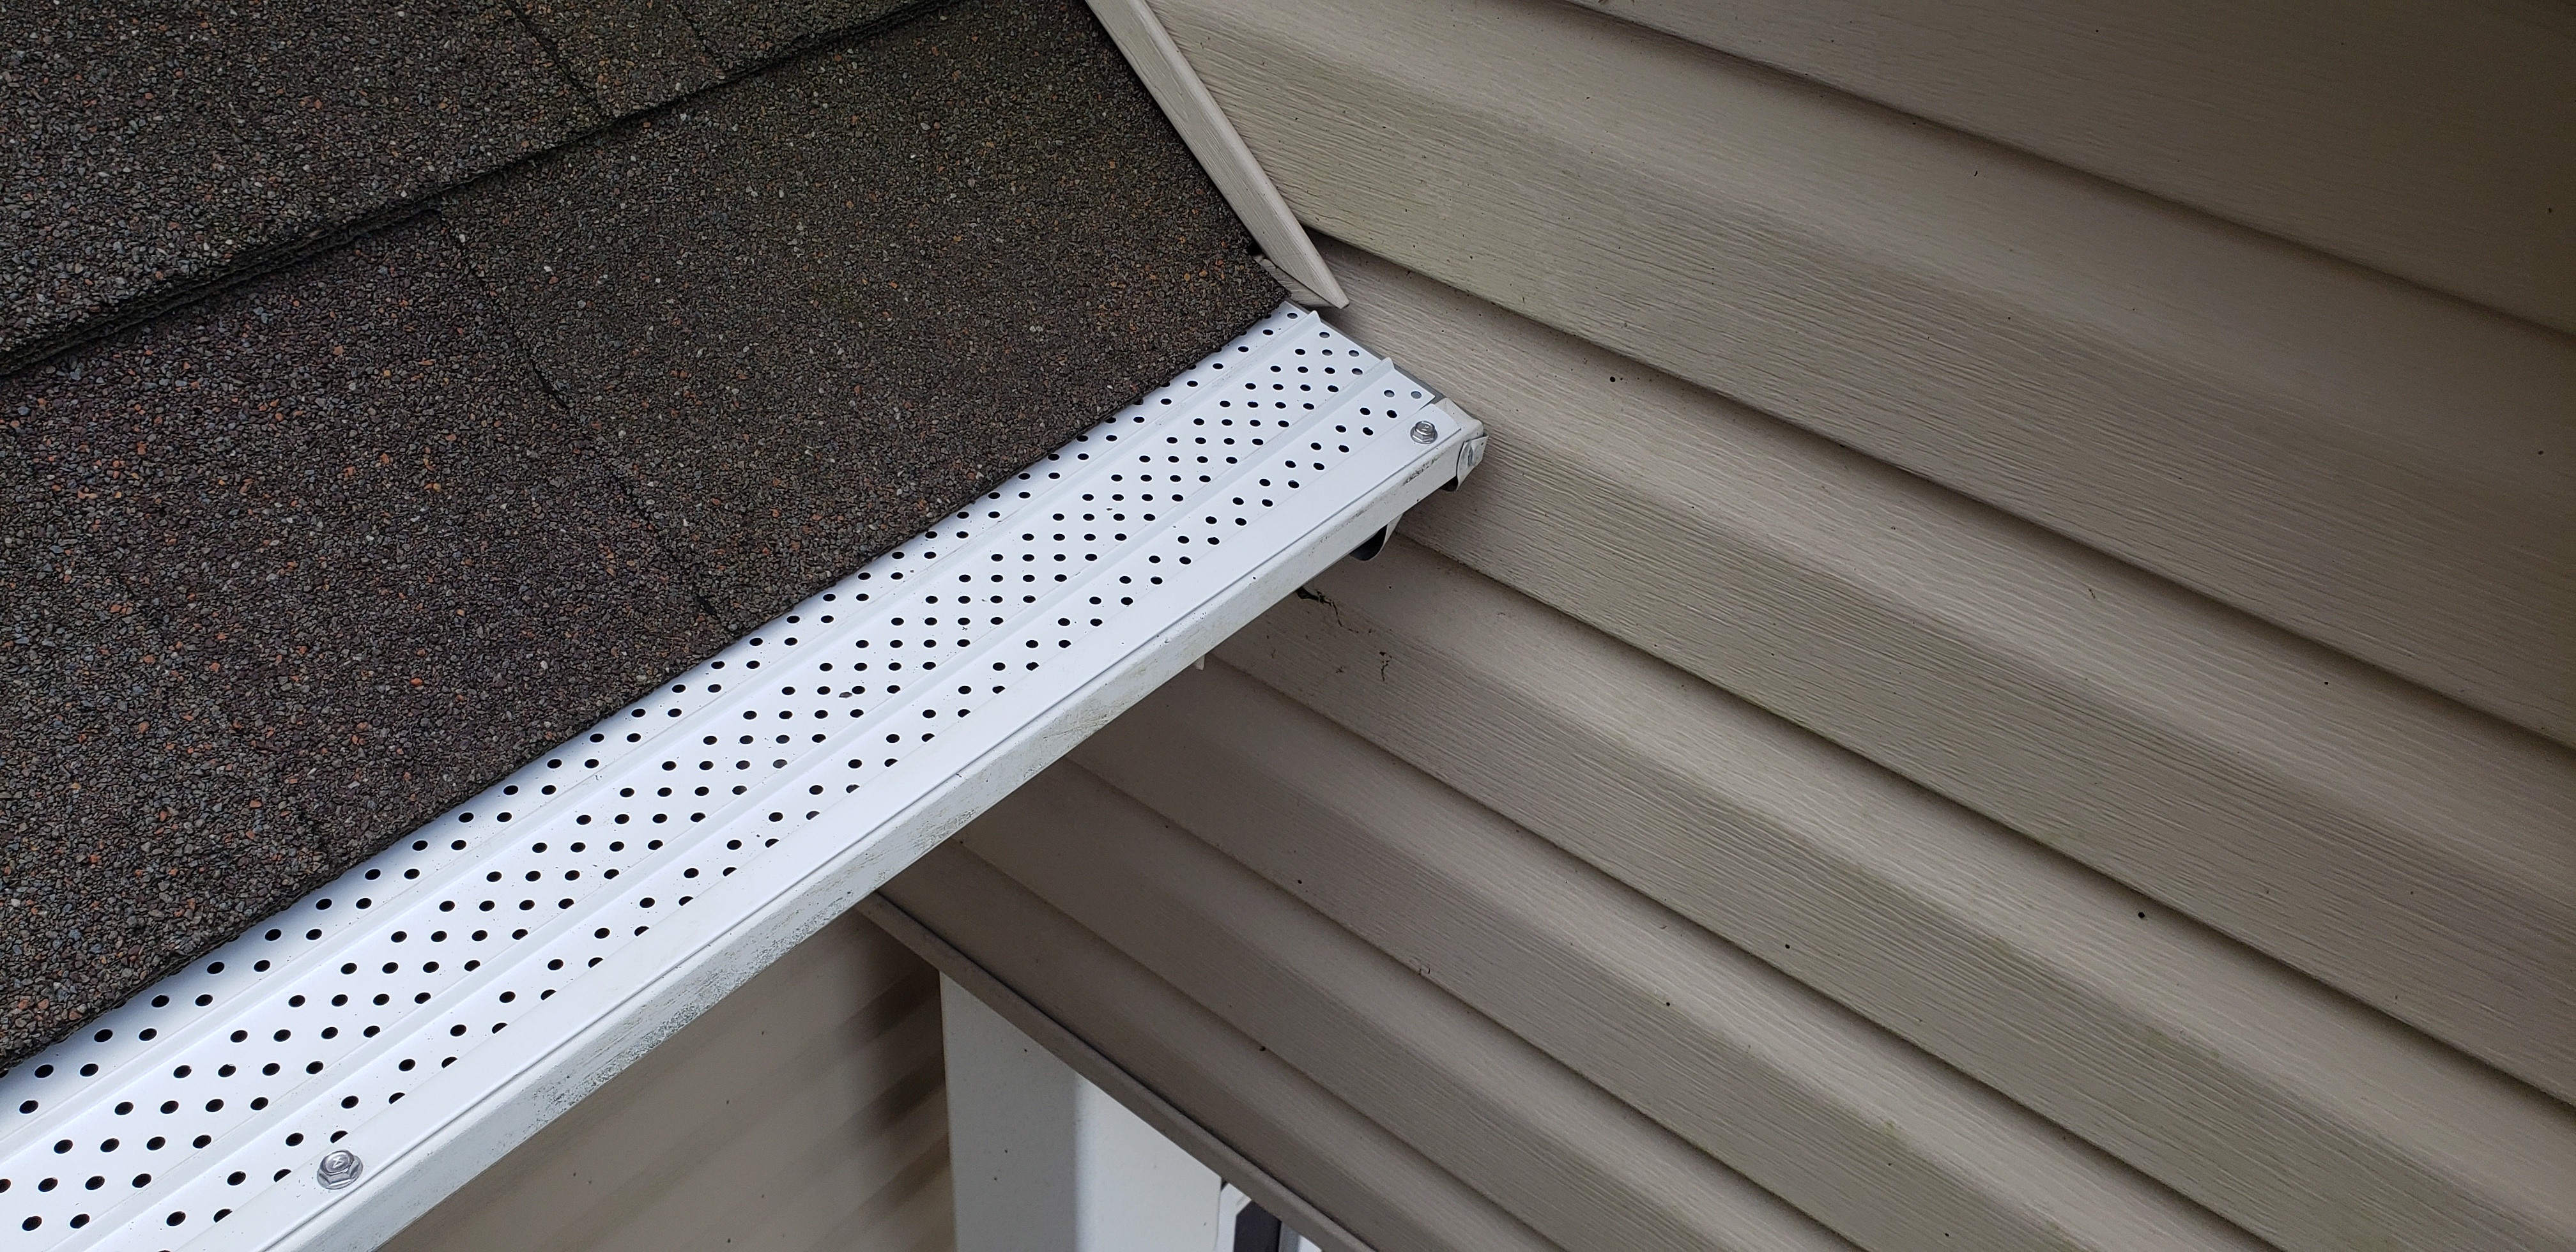 Gutters stay clean with gutter covers installed